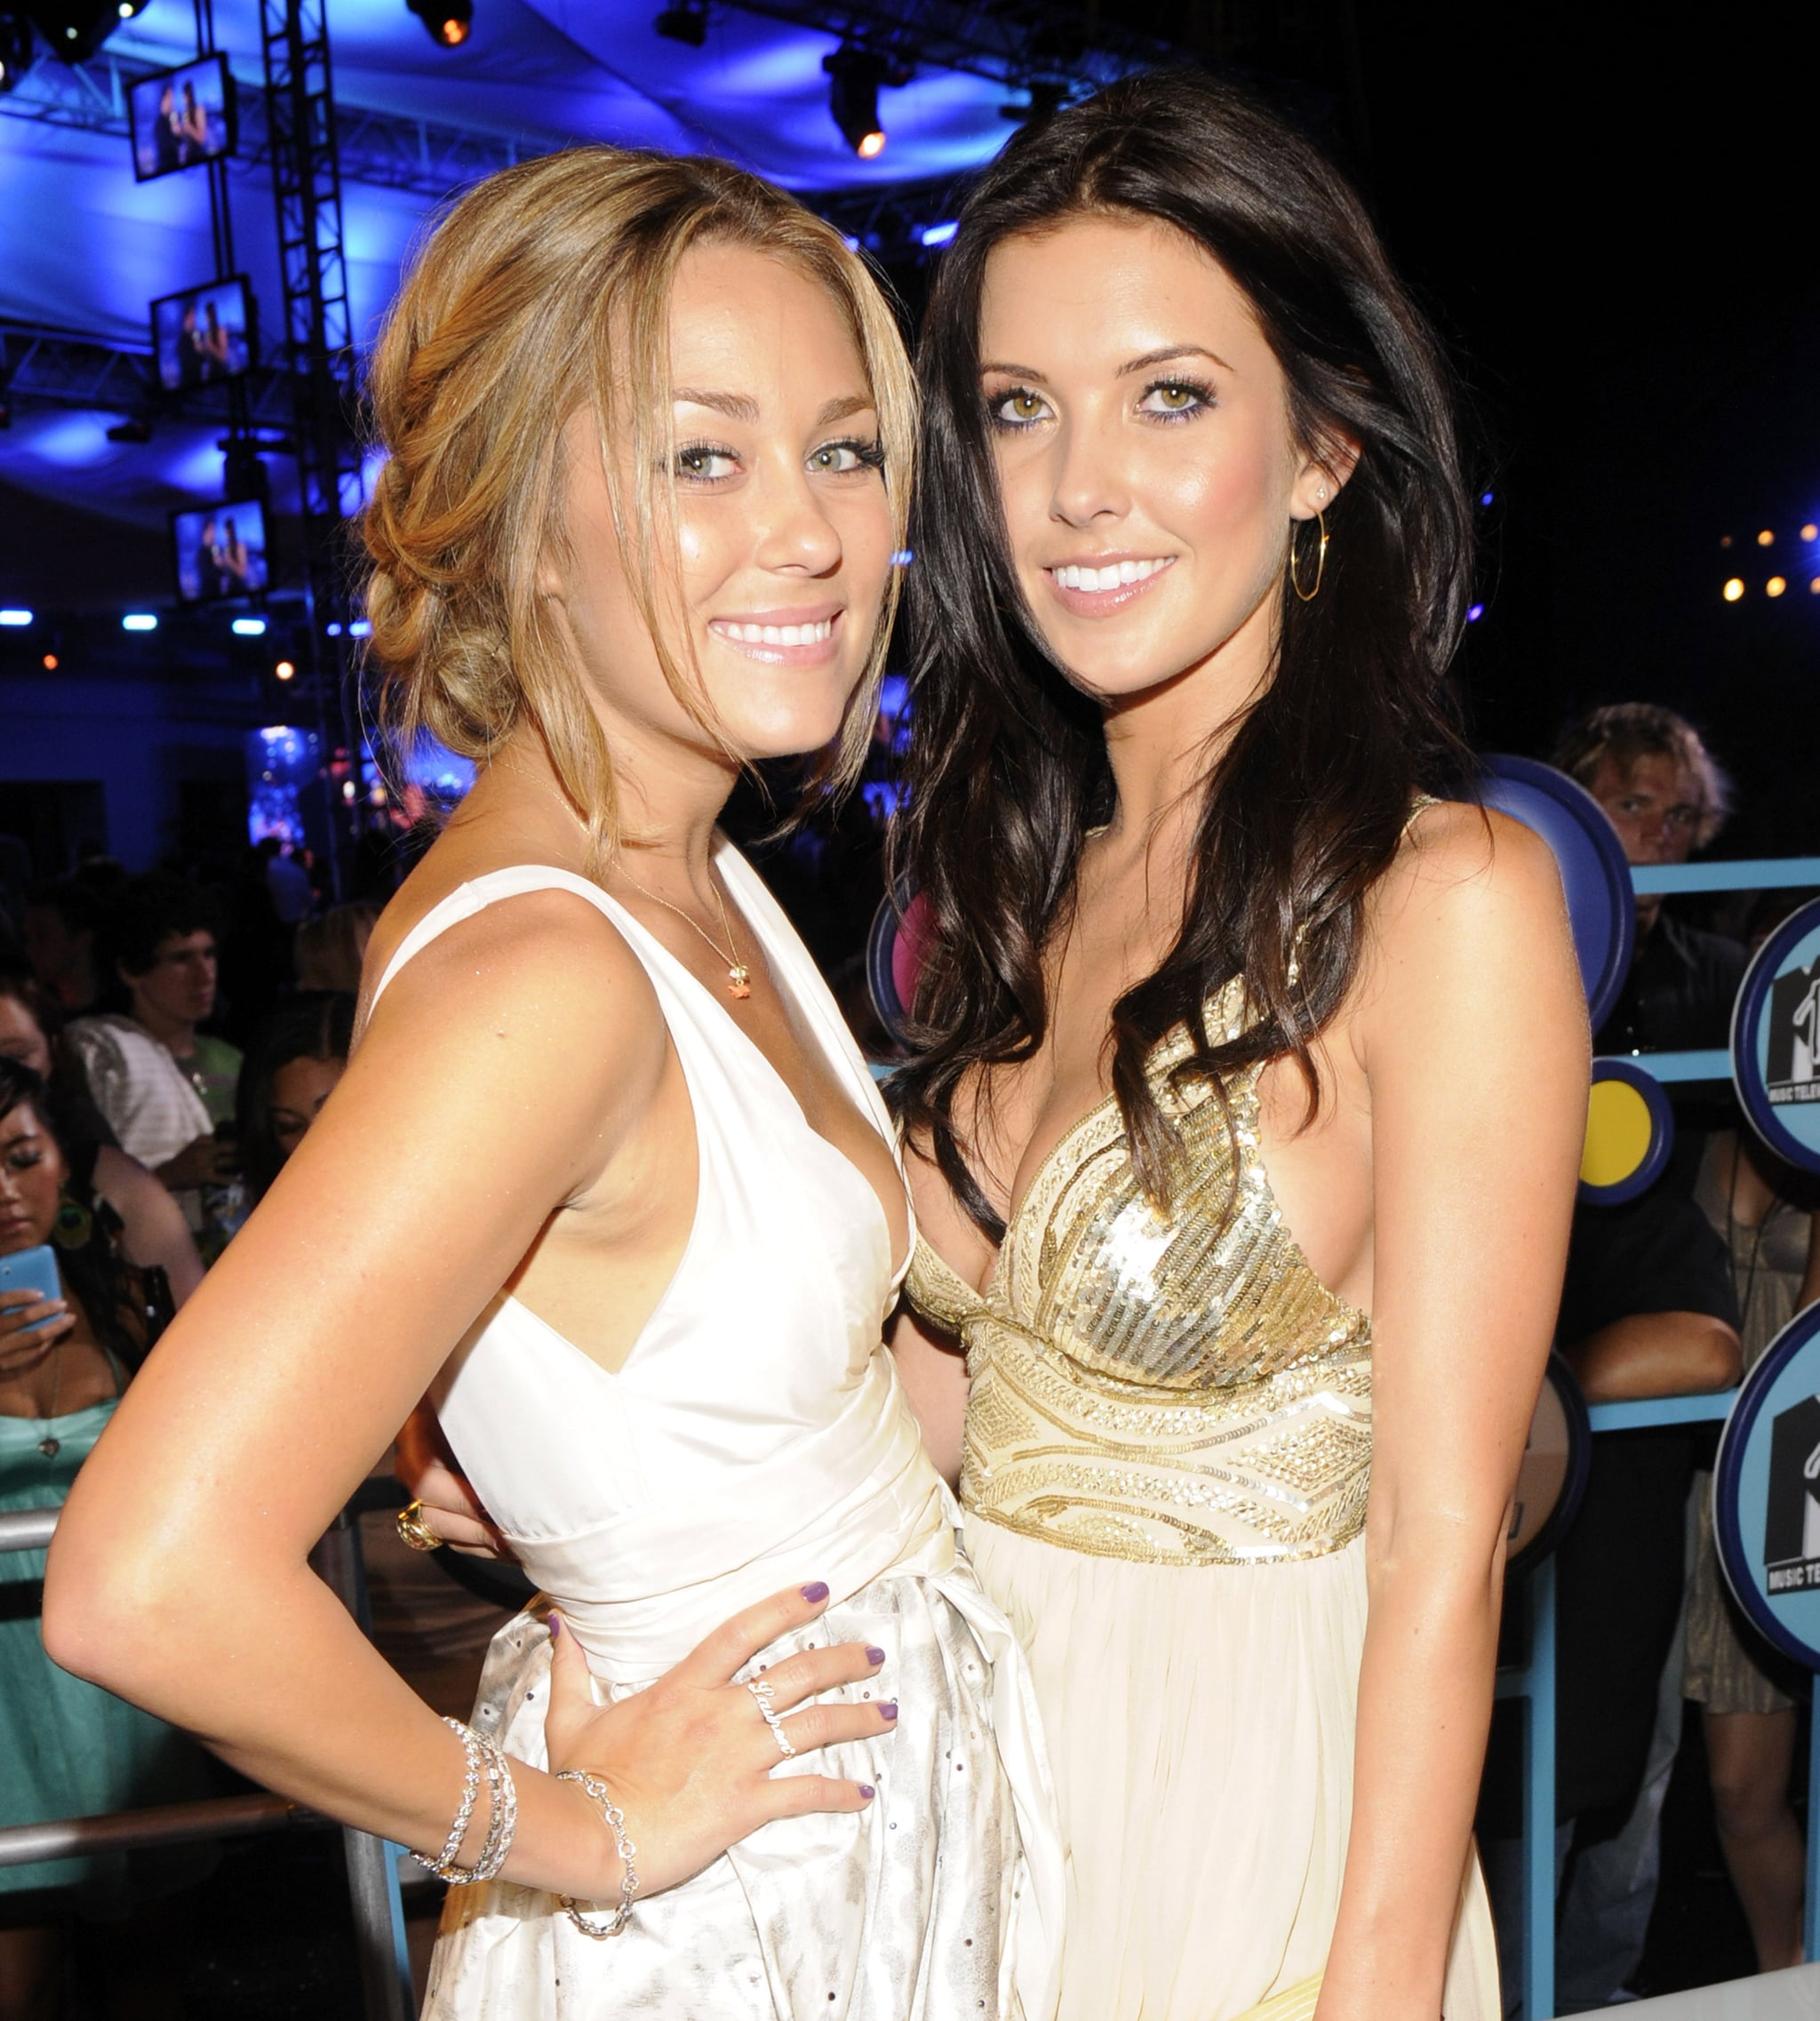 Lauren Conrad and Audrina Patridge partied after the MTV VMAs in September 2008.